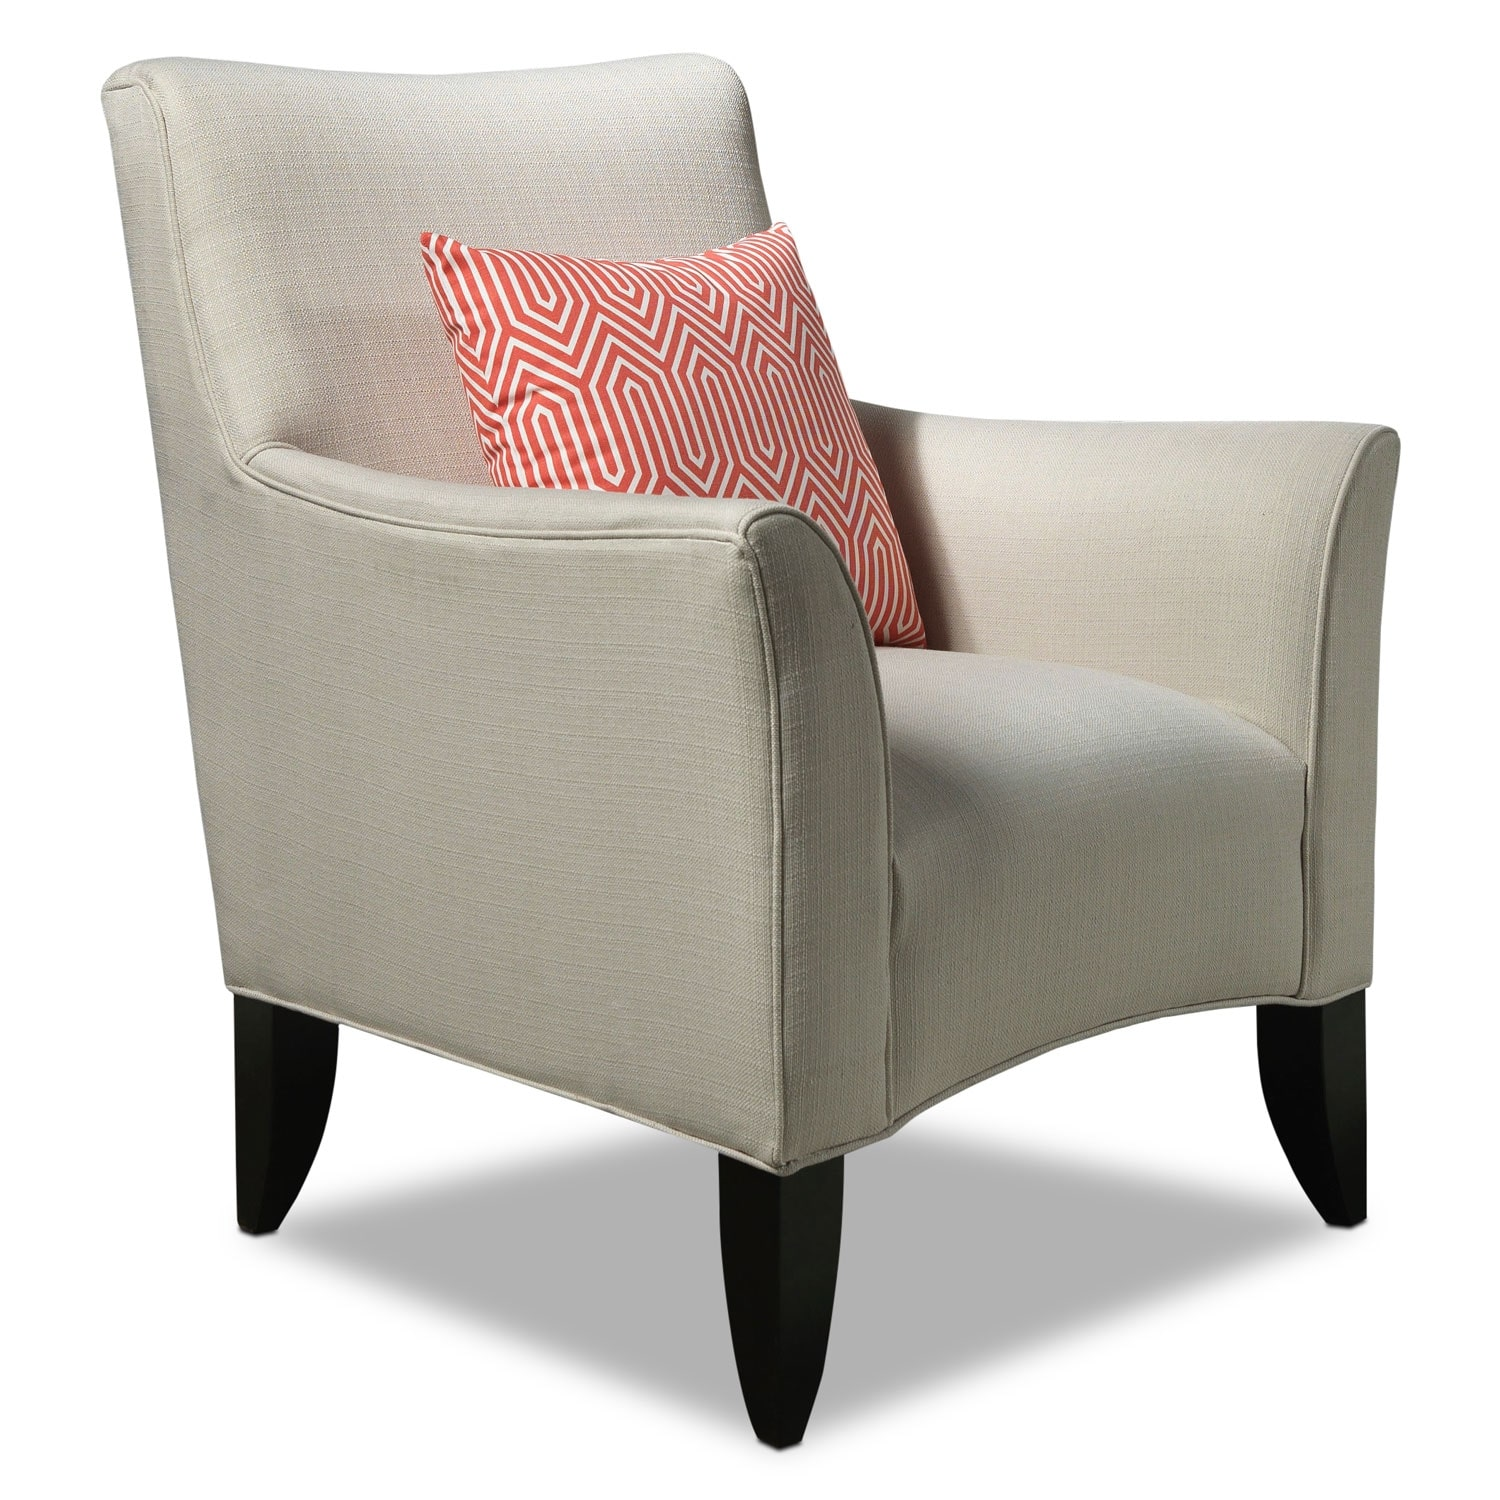 Living Room Furniture - Klein Accent Chair - Ivory